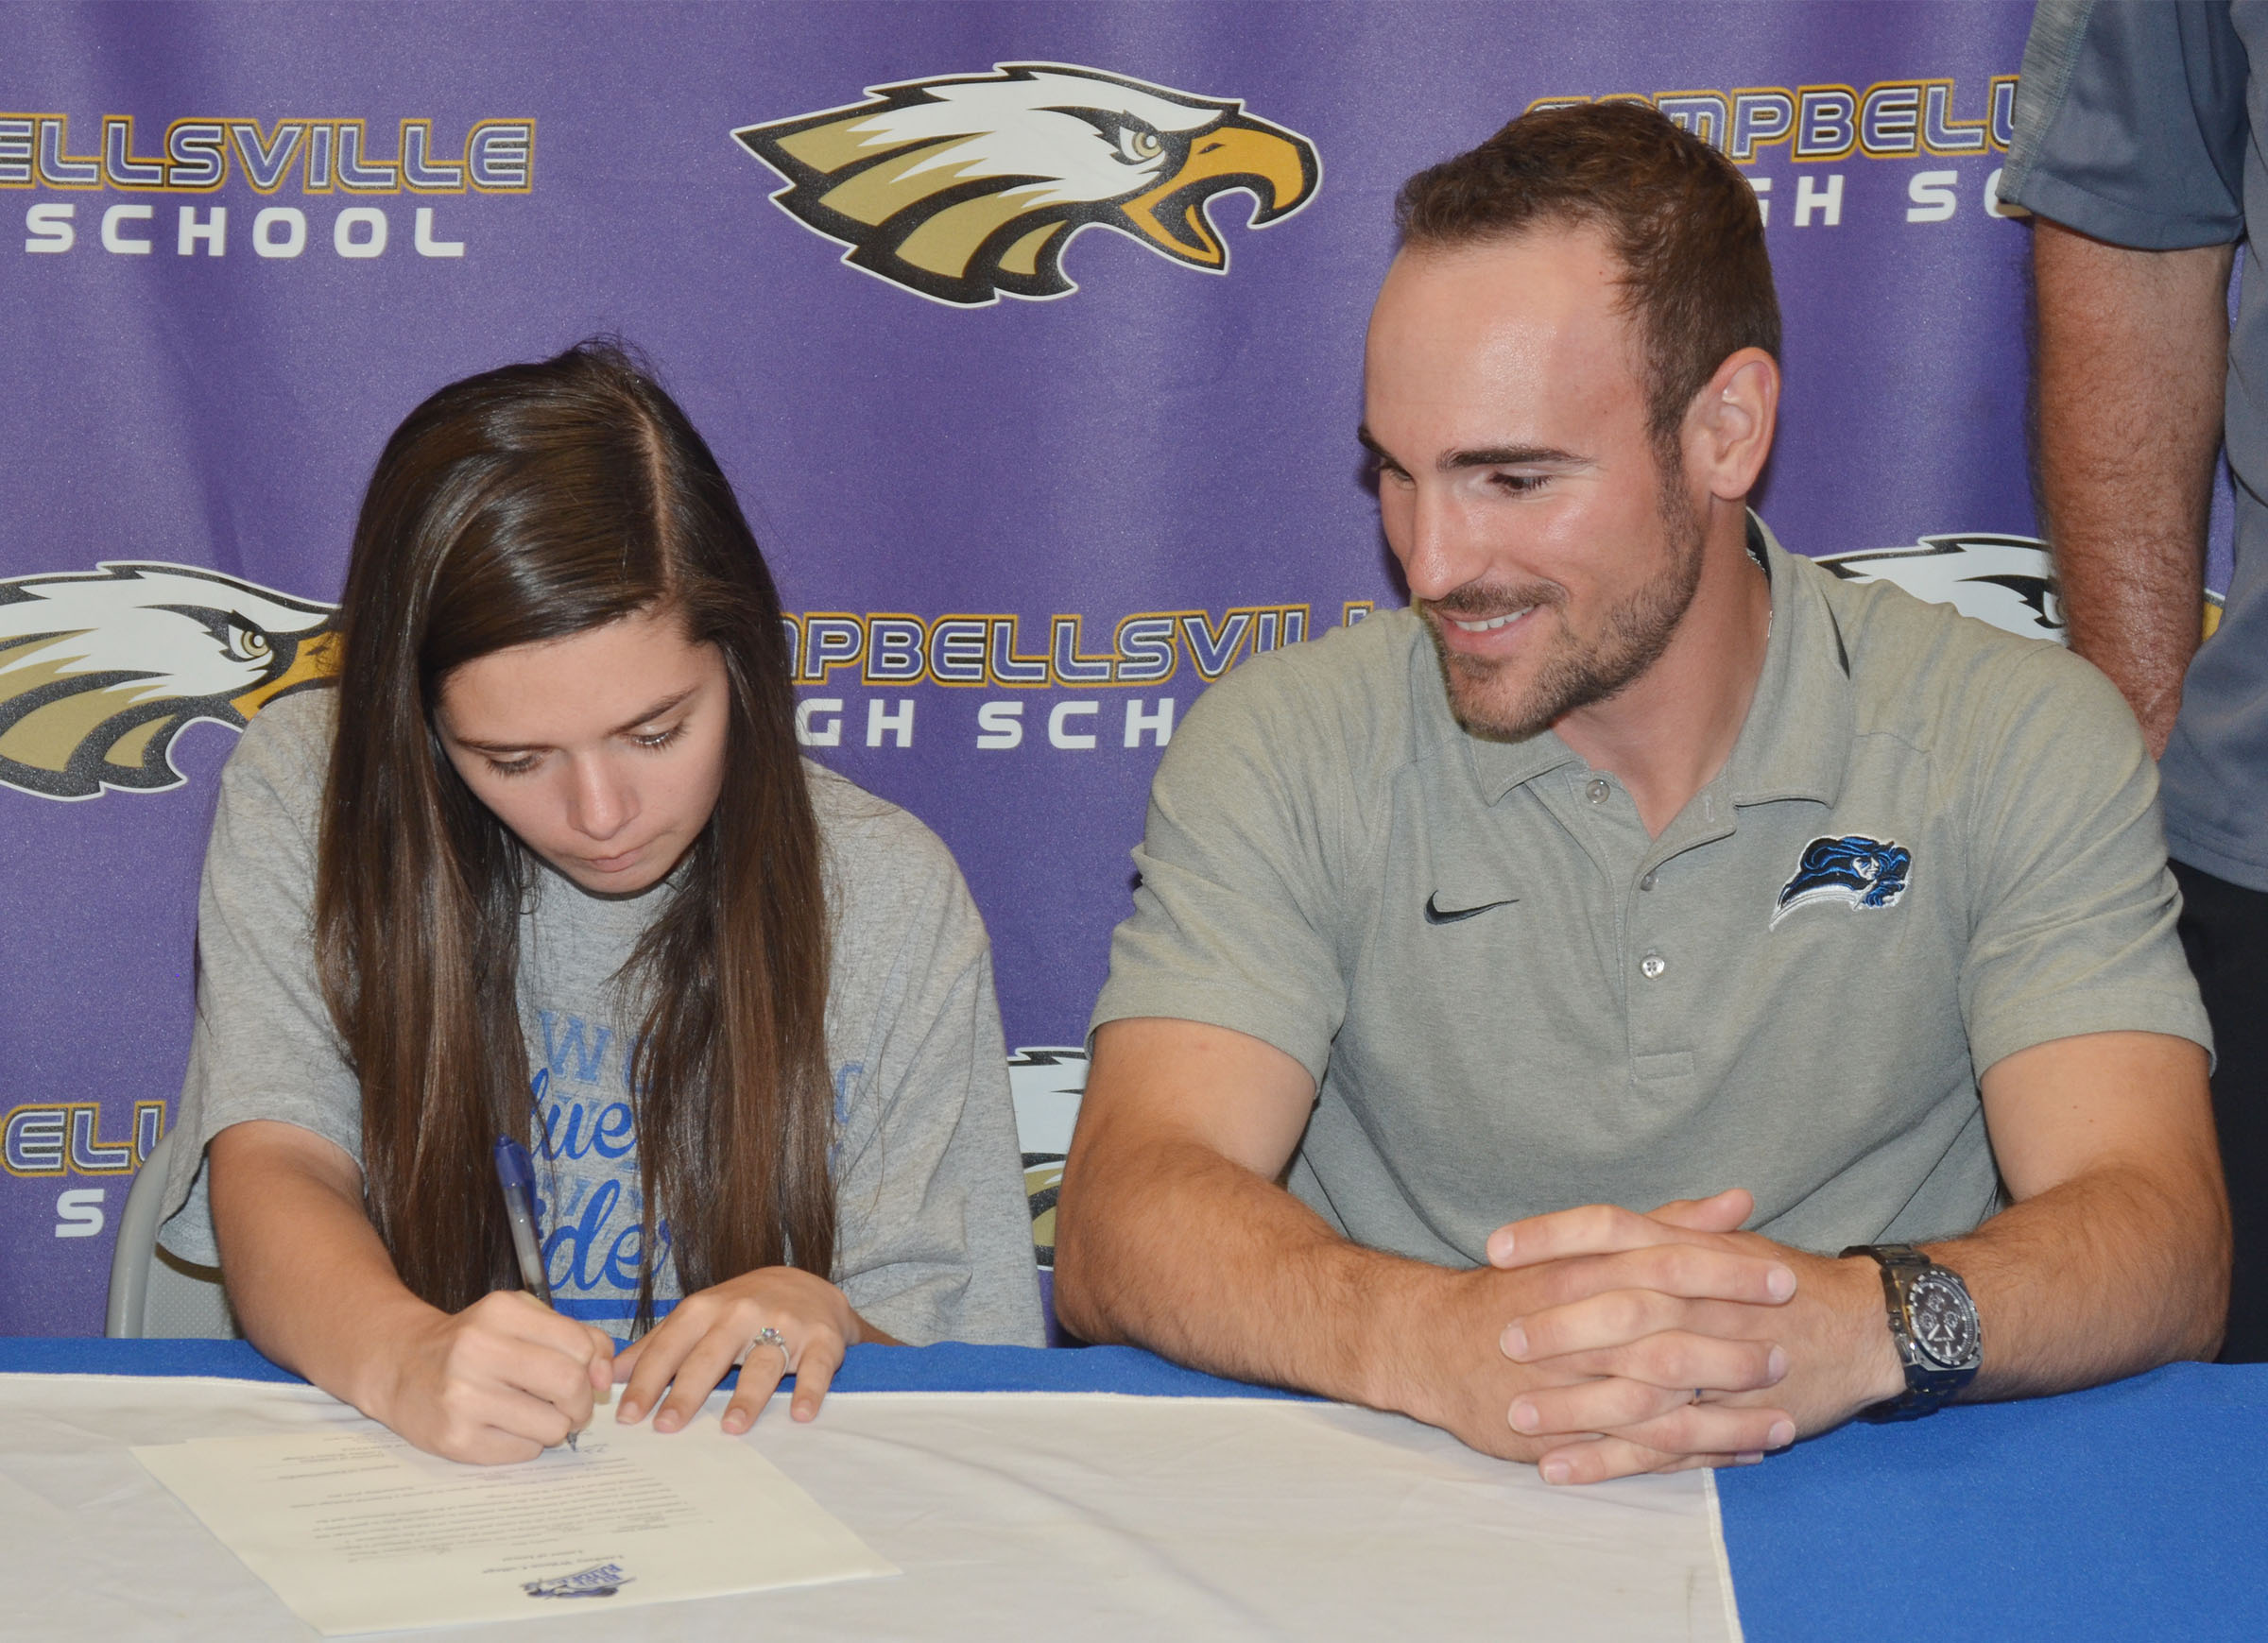 Campbellsville High School senior Shauna Jones will continue her academic and tennis career at Lindsey Wilson College this fall. Above, she signs her letter of intent with LWC head tennis coach Marlon Dal Pont.